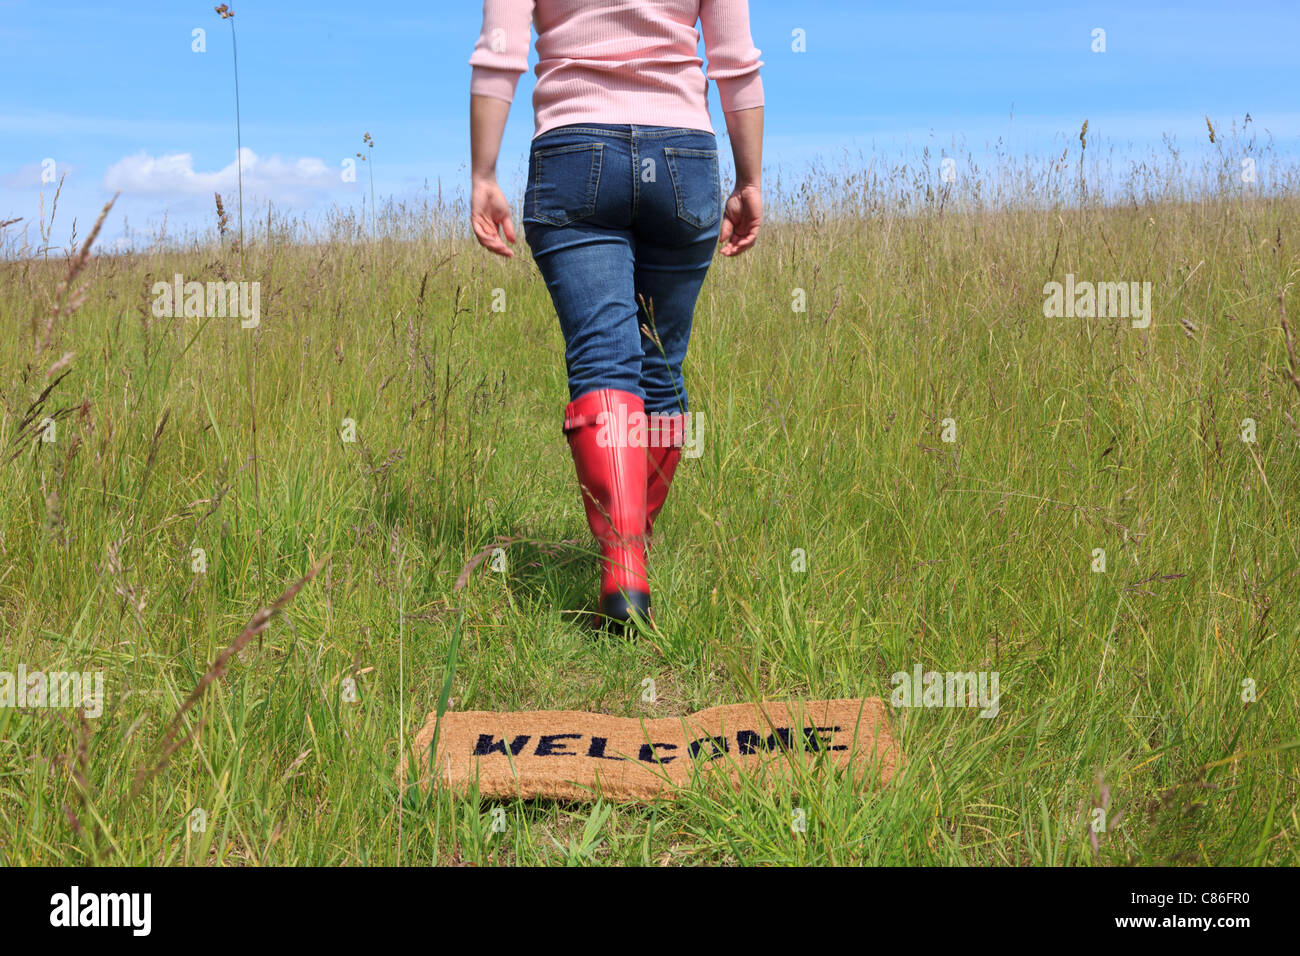 Photo of a woman walking across a welcome mat in a grassy field on a bright sunny day with blue sky. - Stock Image